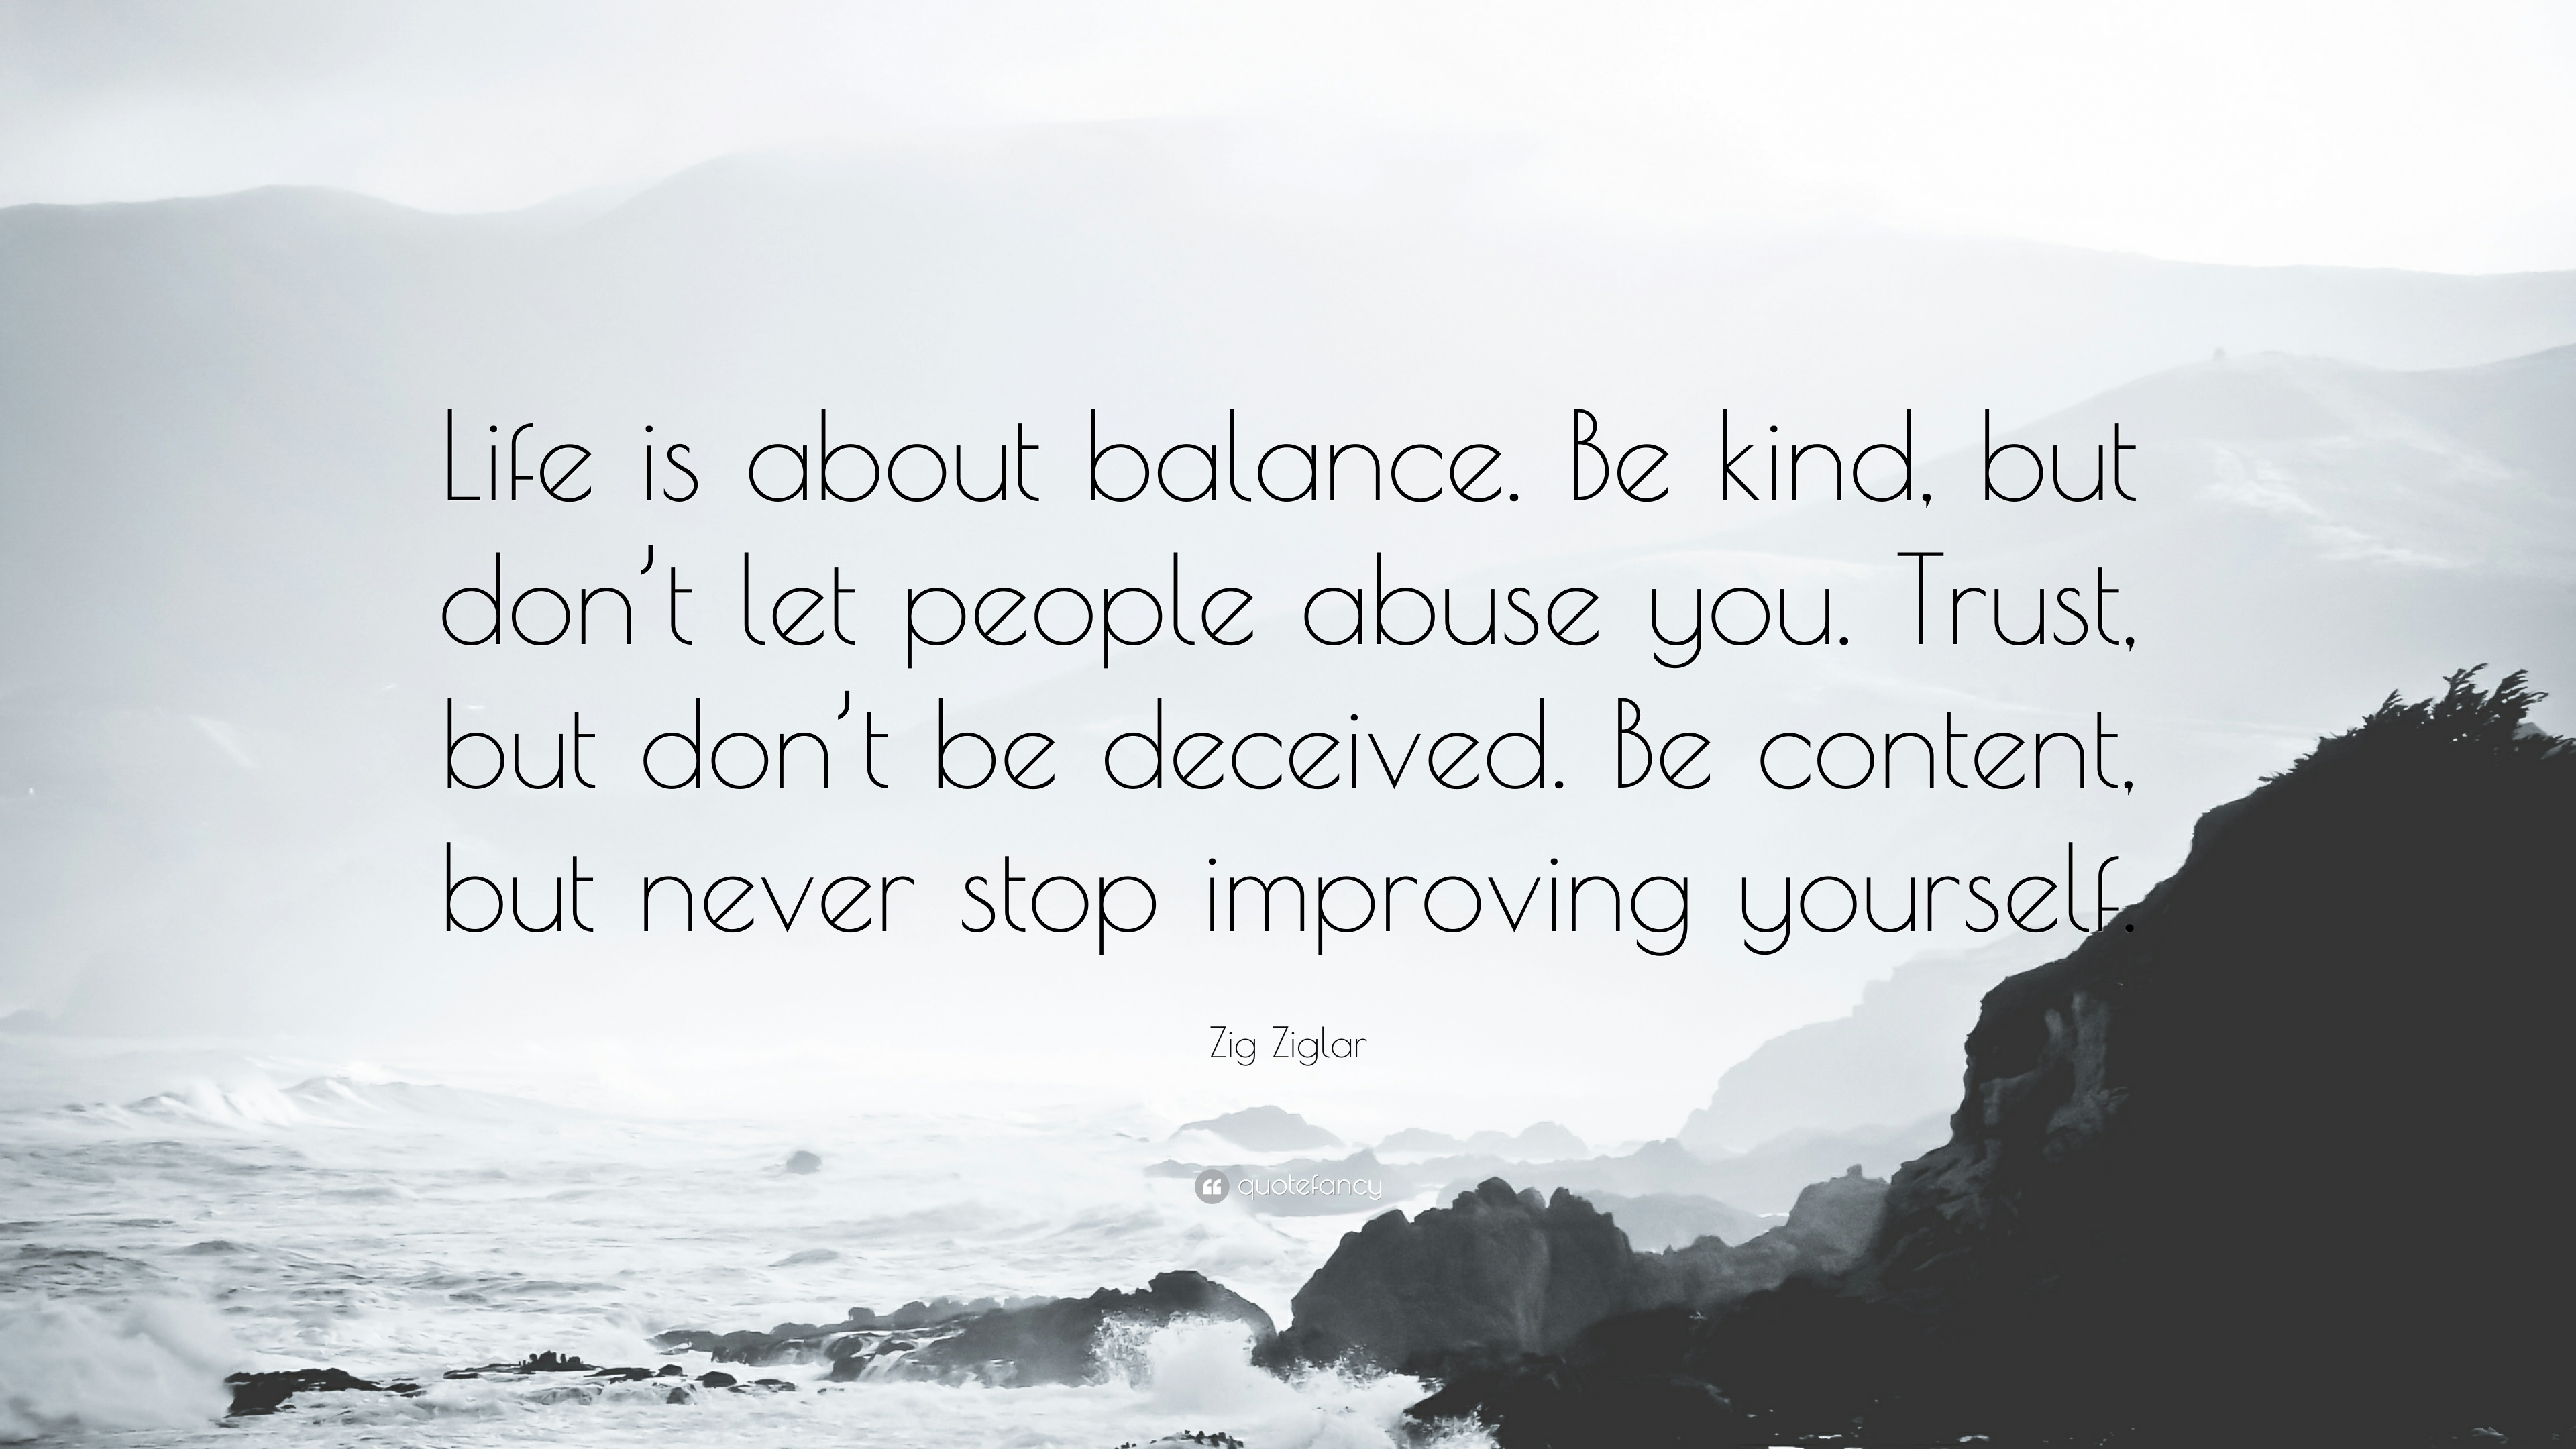 Balanced Life Quotes Quotes About Balance 40 Wallpapers  Quotefancy